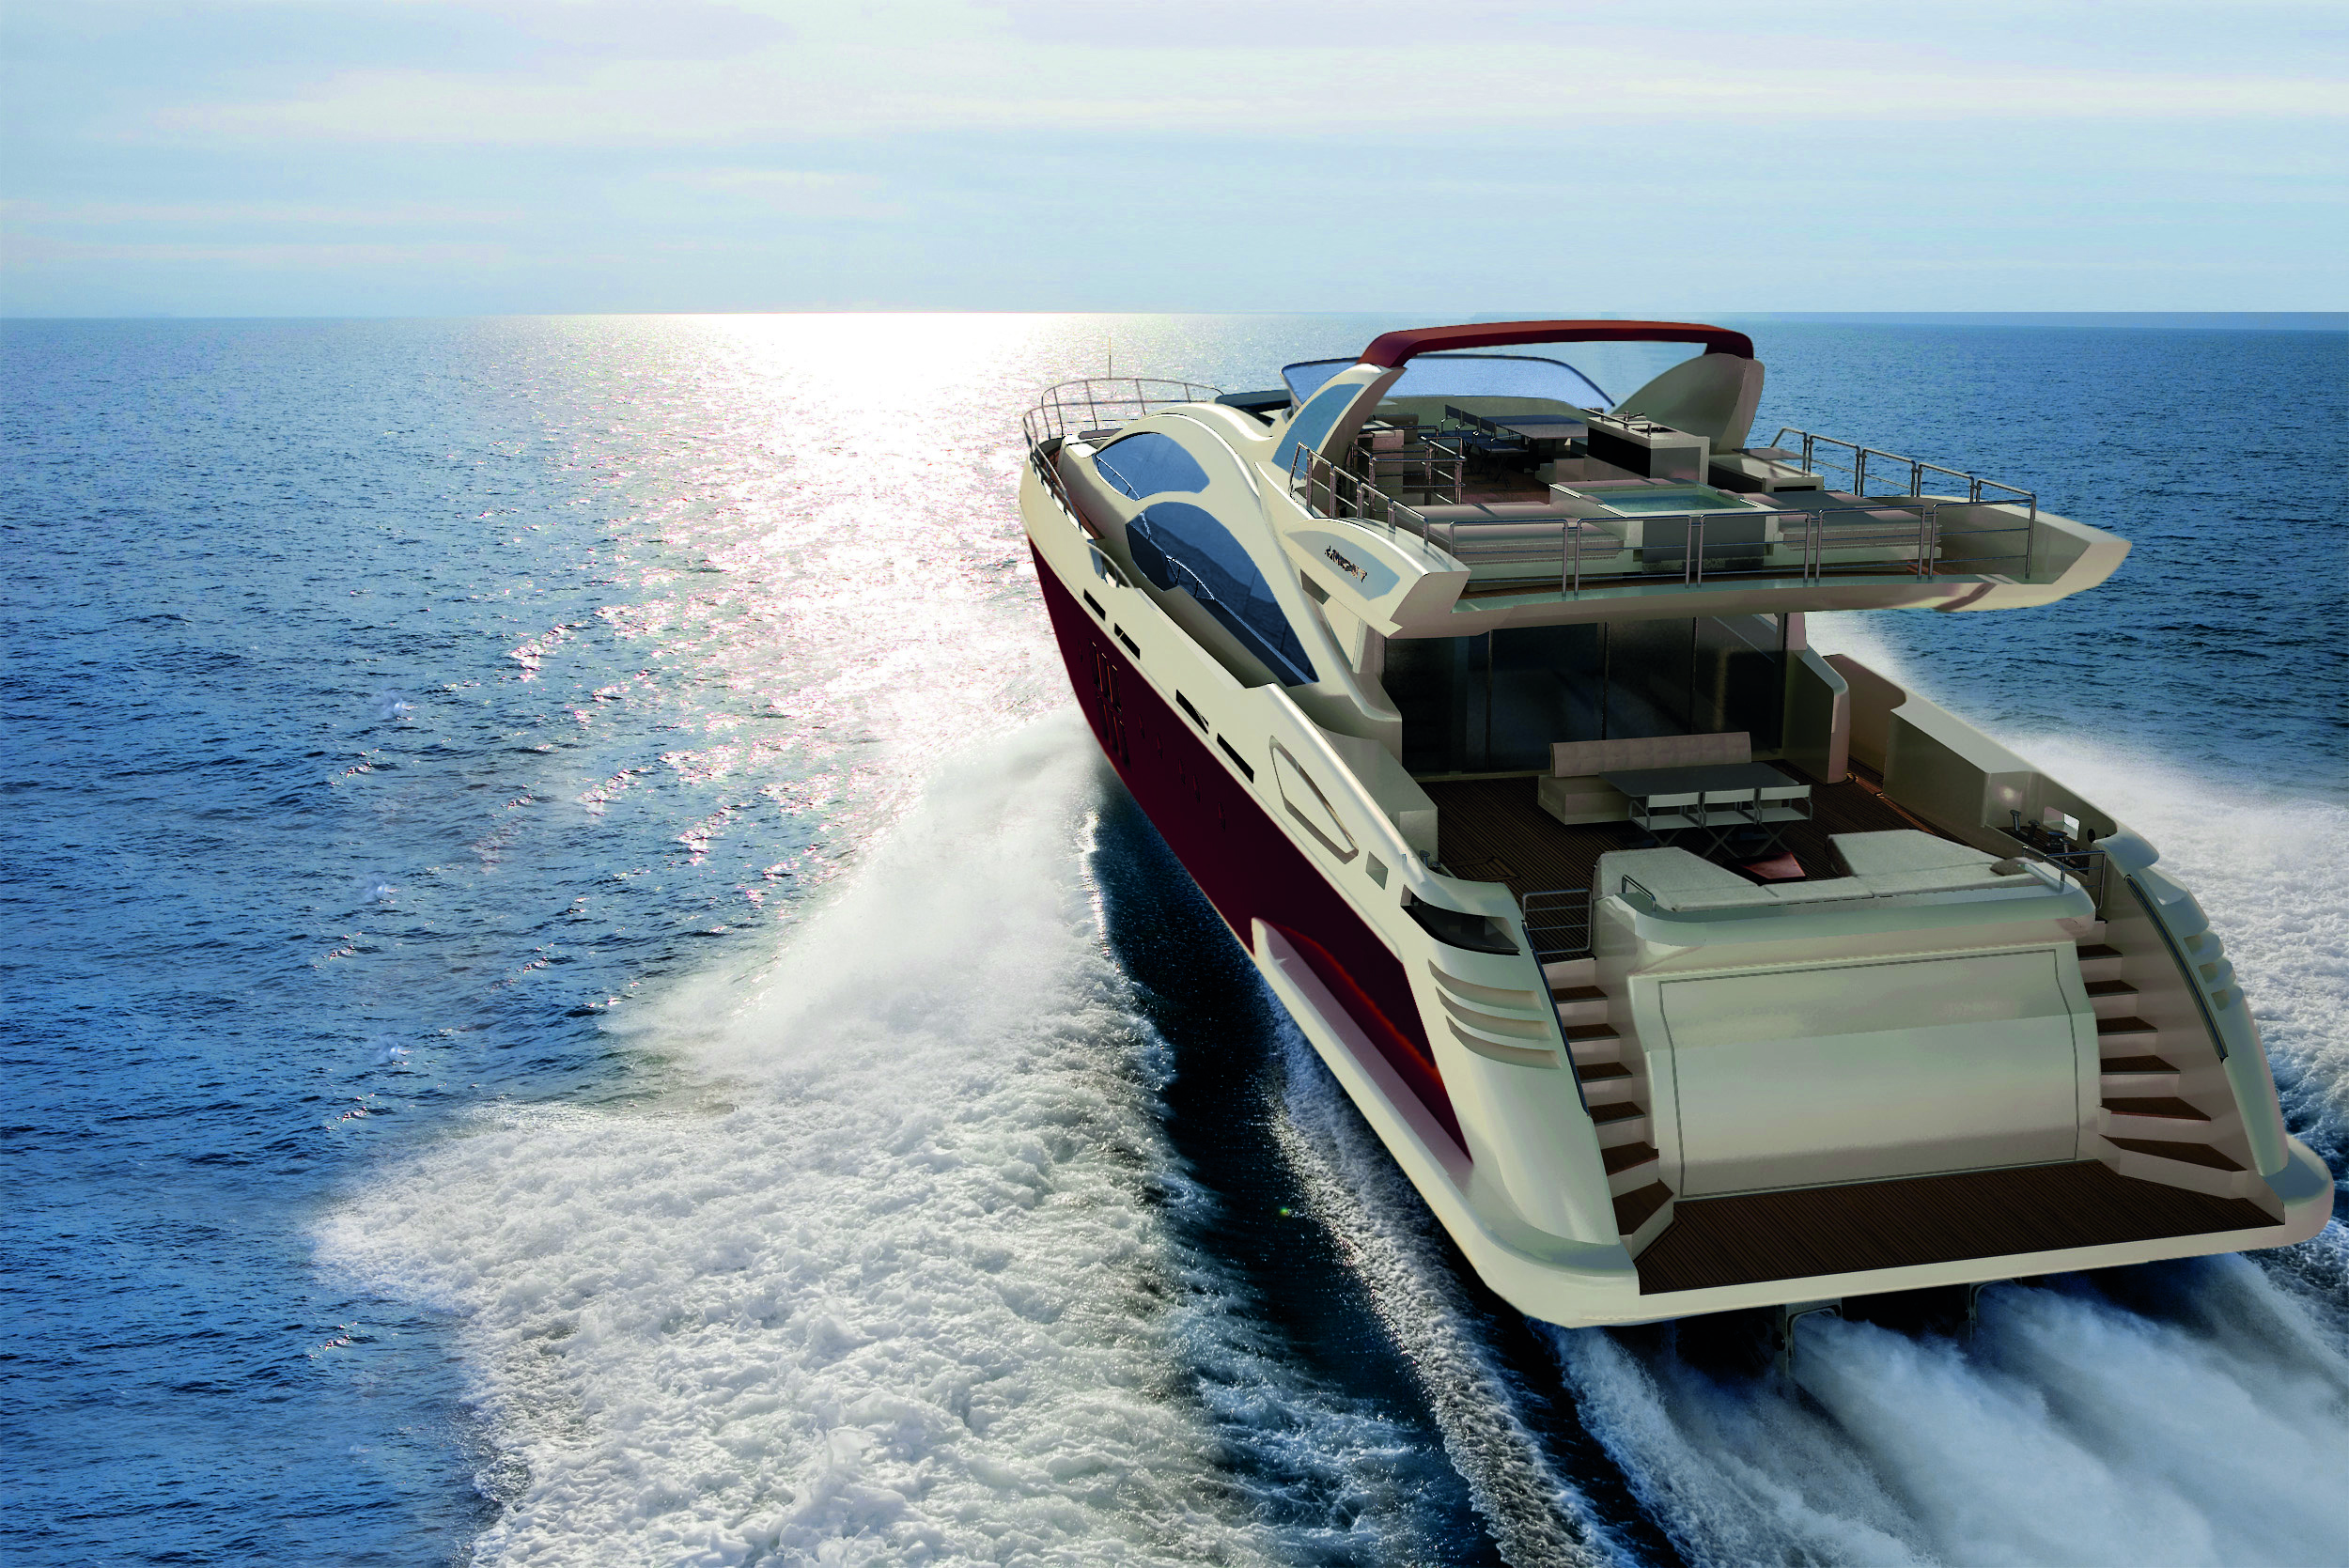 Azimut step up their game in the super yacht market